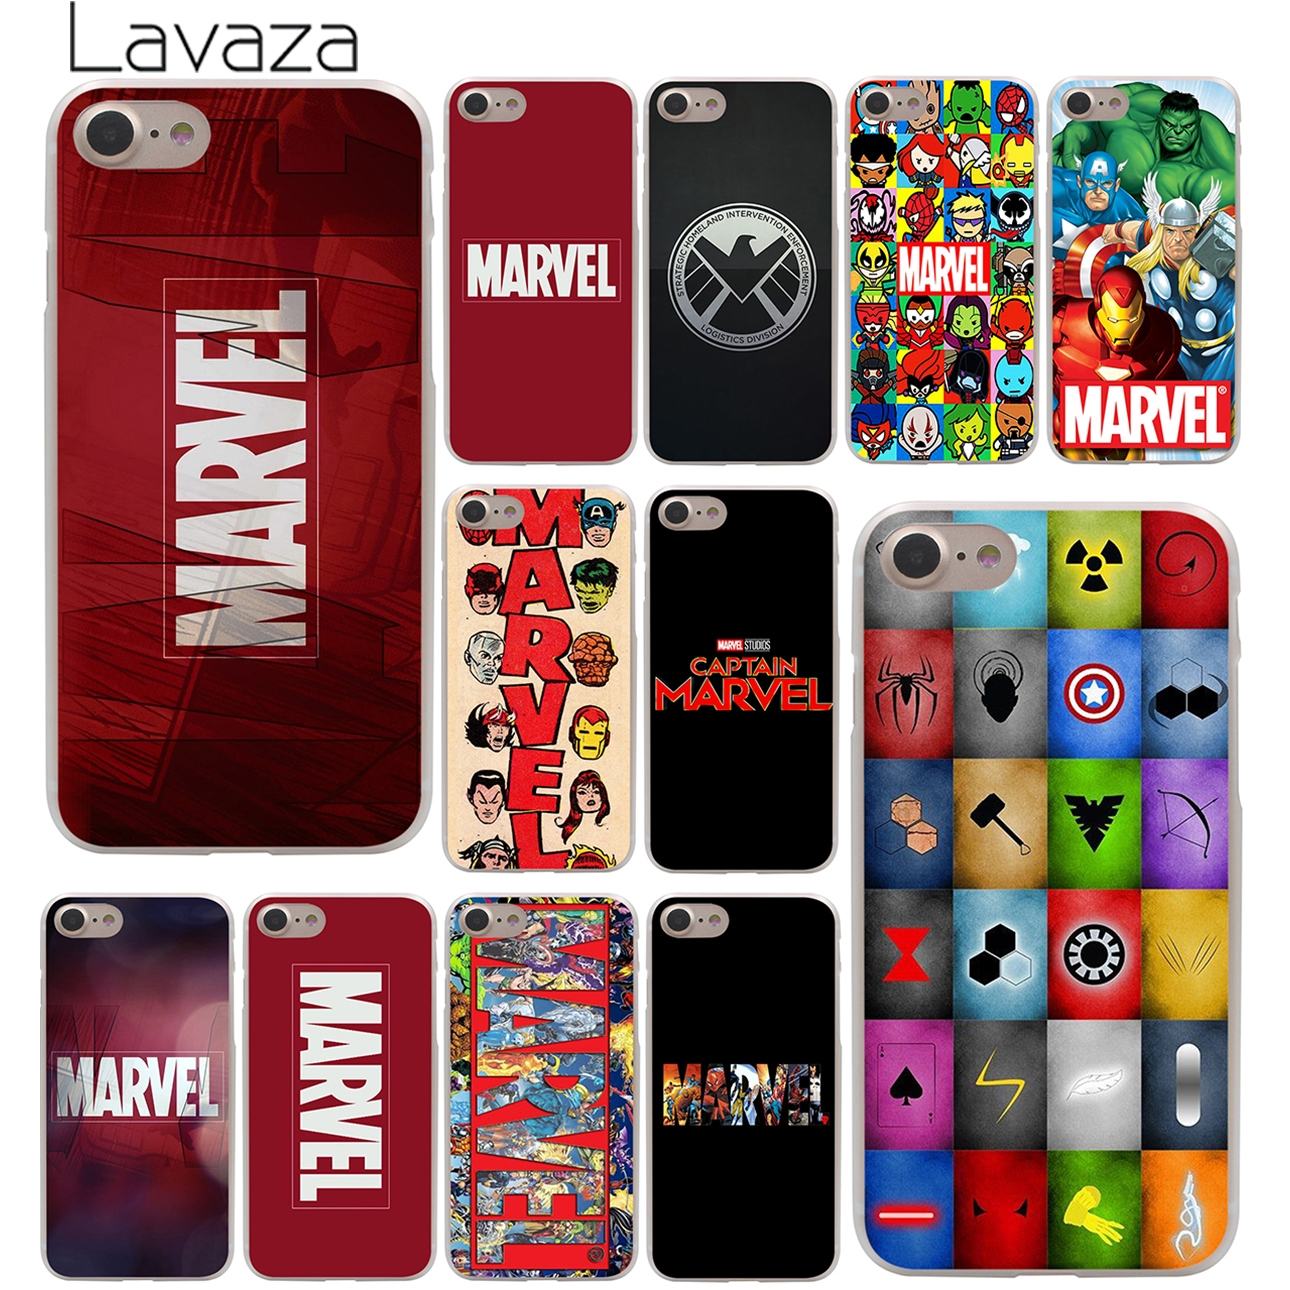 lavaza luxury marvel comics logo hard phone cover case for apple iphone 10 x 8 7 6 6s plus 5 5s. Black Bedroom Furniture Sets. Home Design Ideas